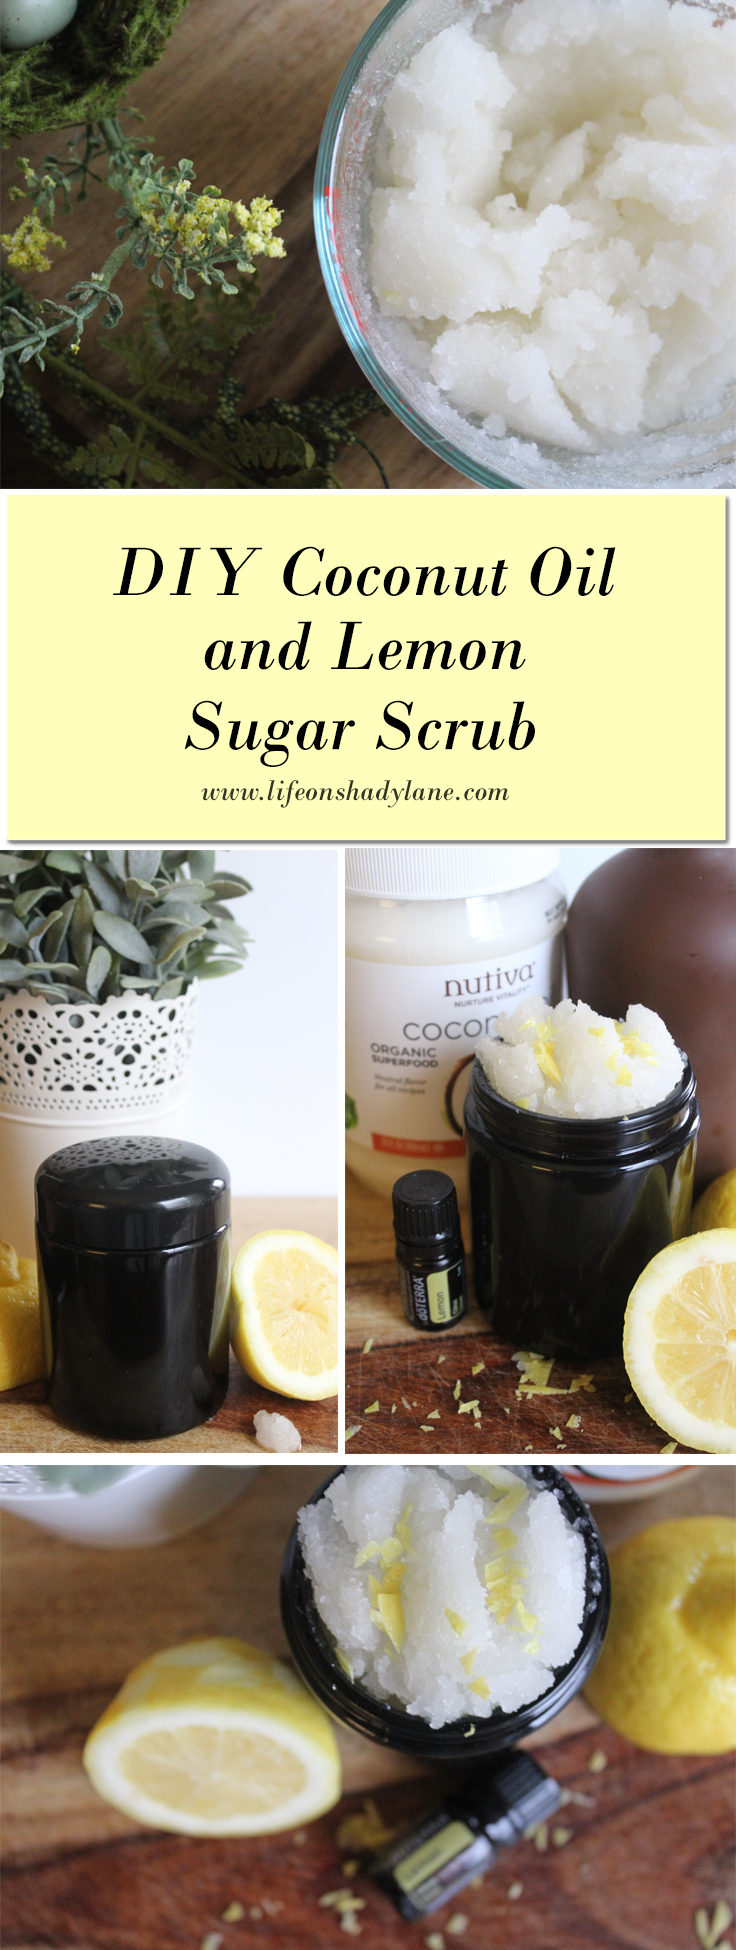 DIY Coconut Oil + Lemon Sugar Scrub via Life on Shady Lane blog